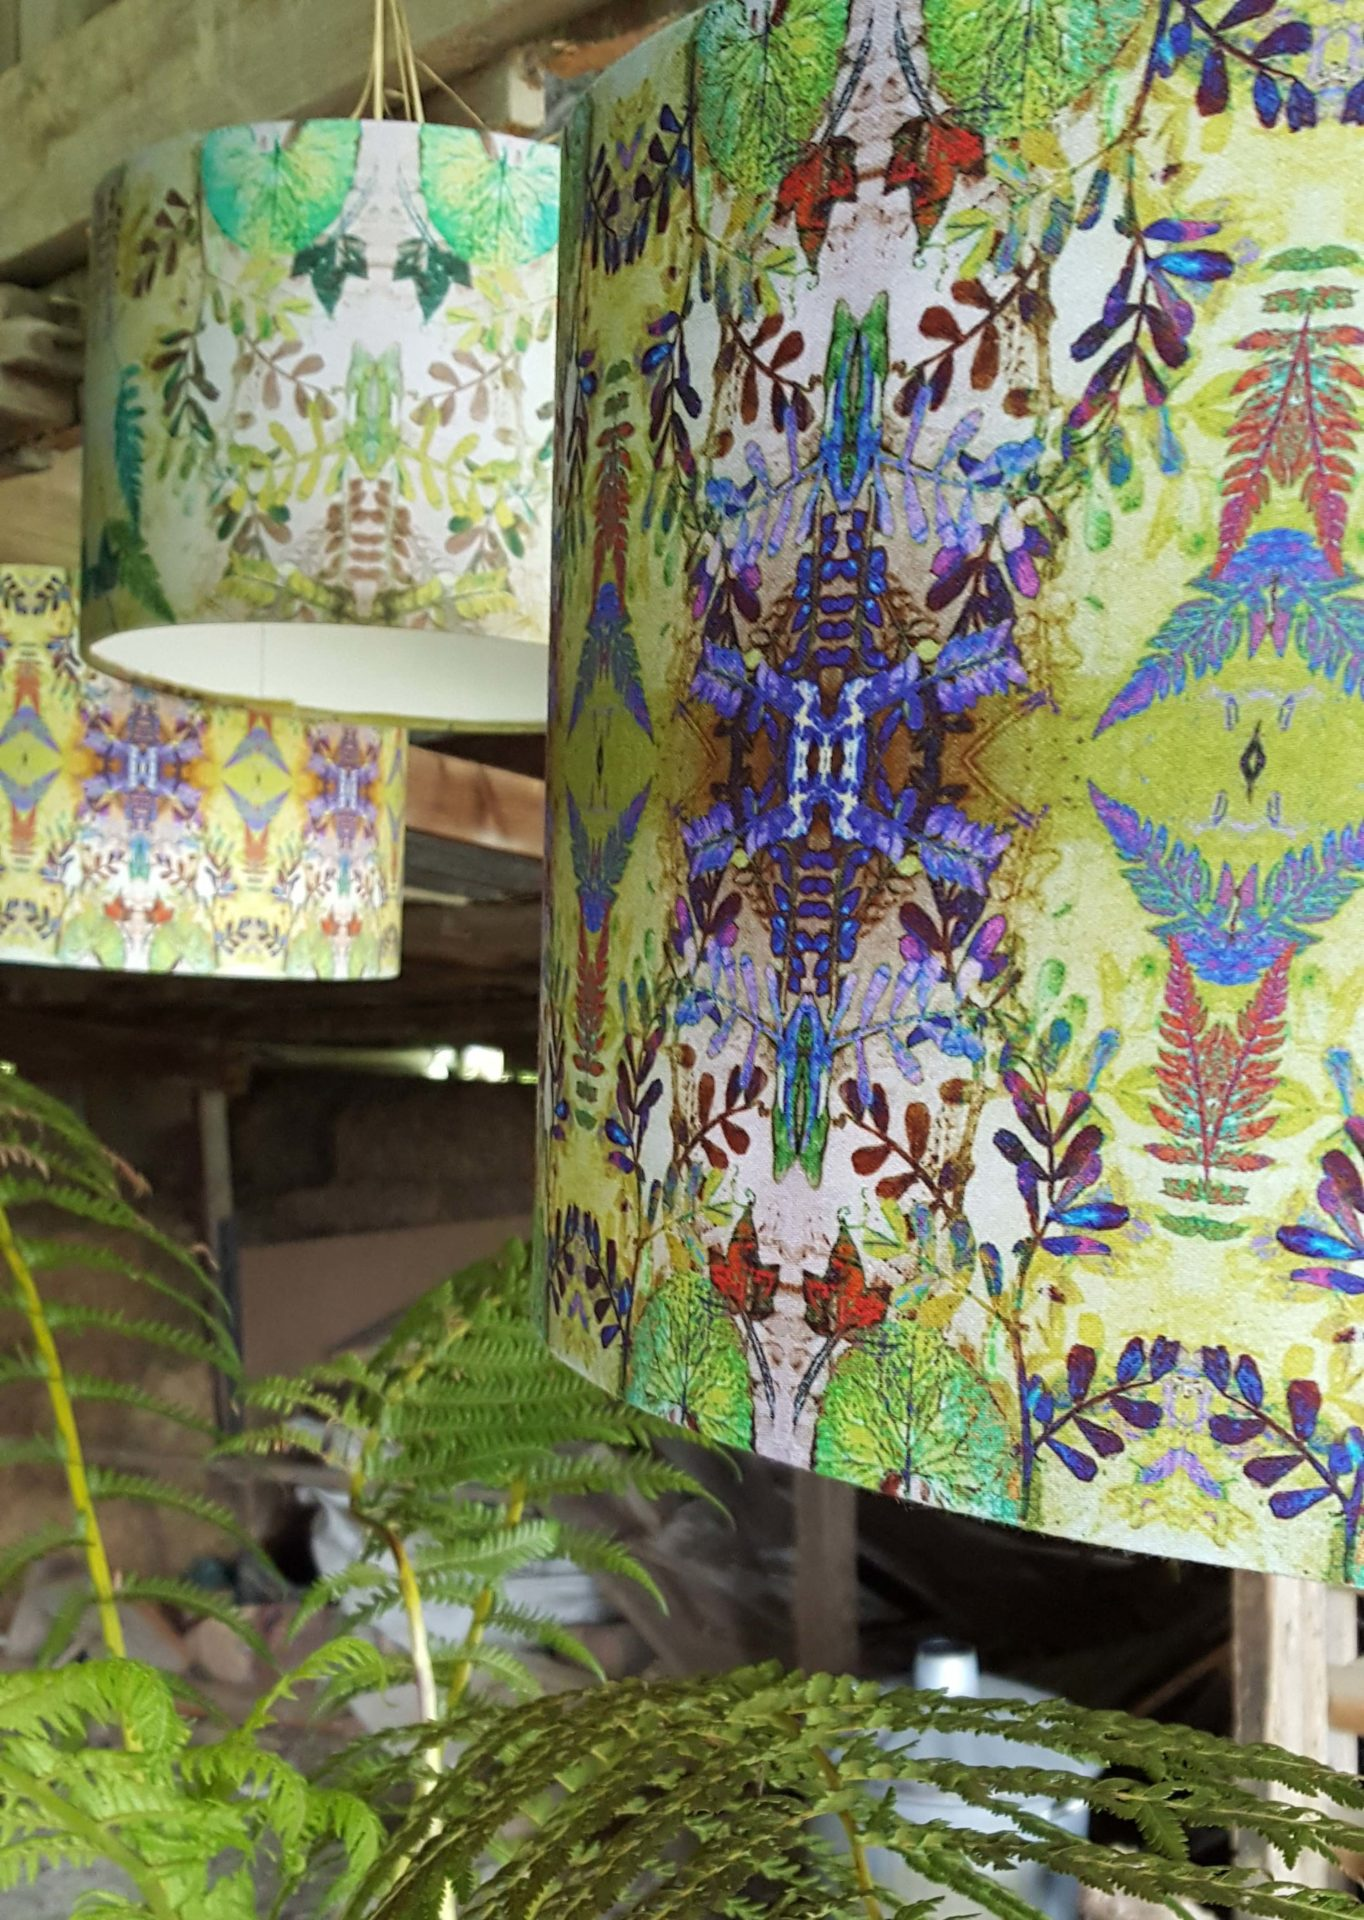 Arty Lampshades in the Barn